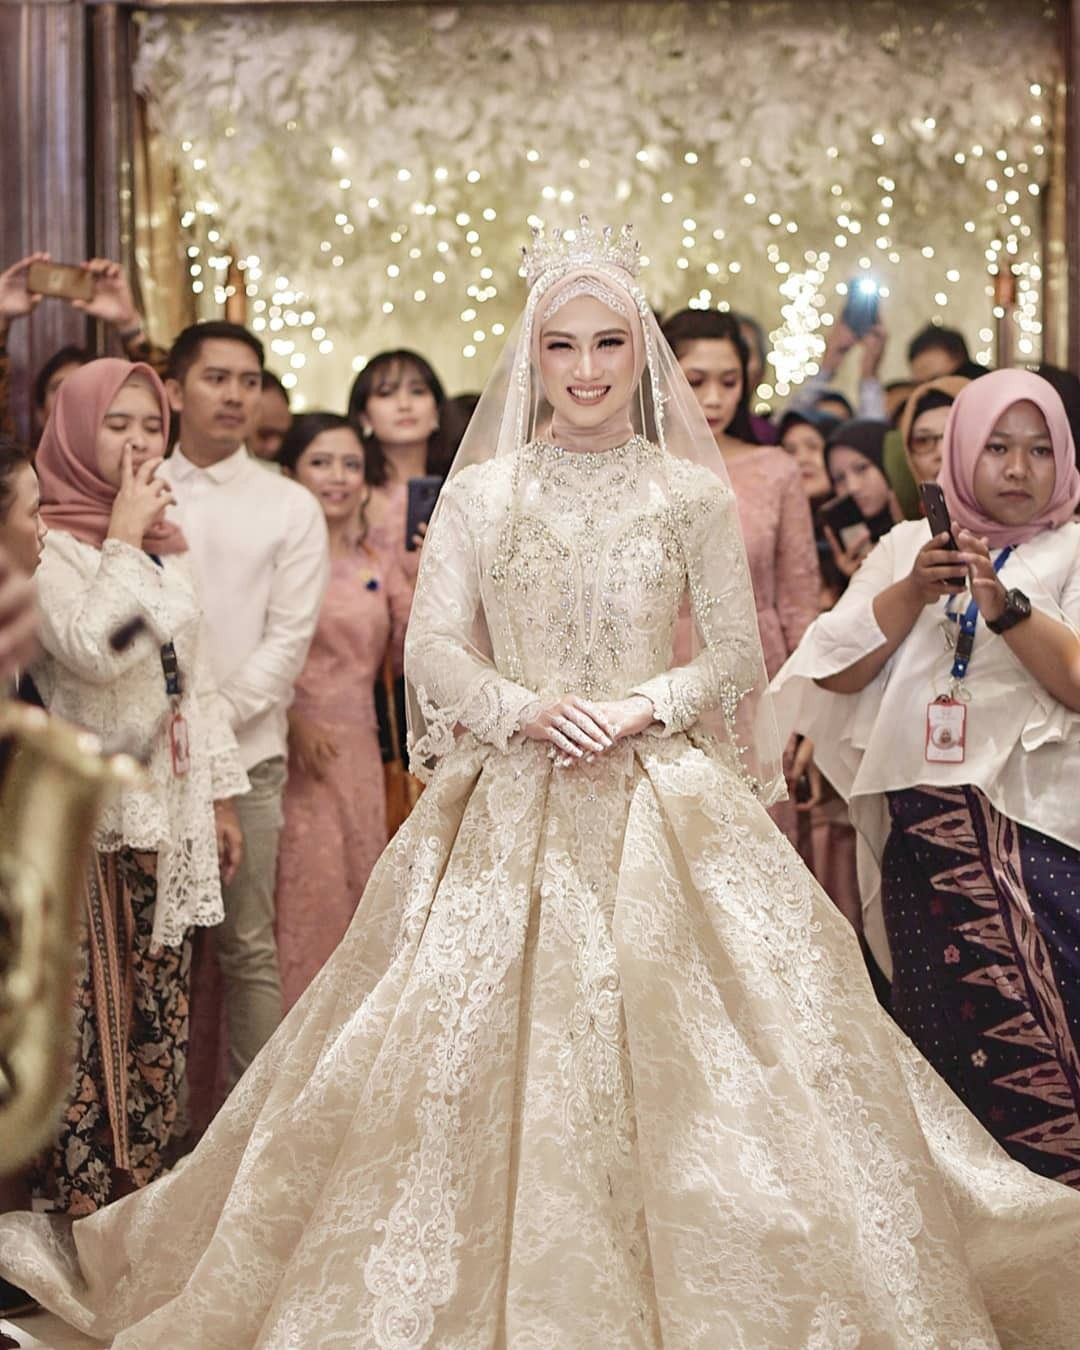 The beautiful Melody Nurramdhani Laksani on her wedding 10 November